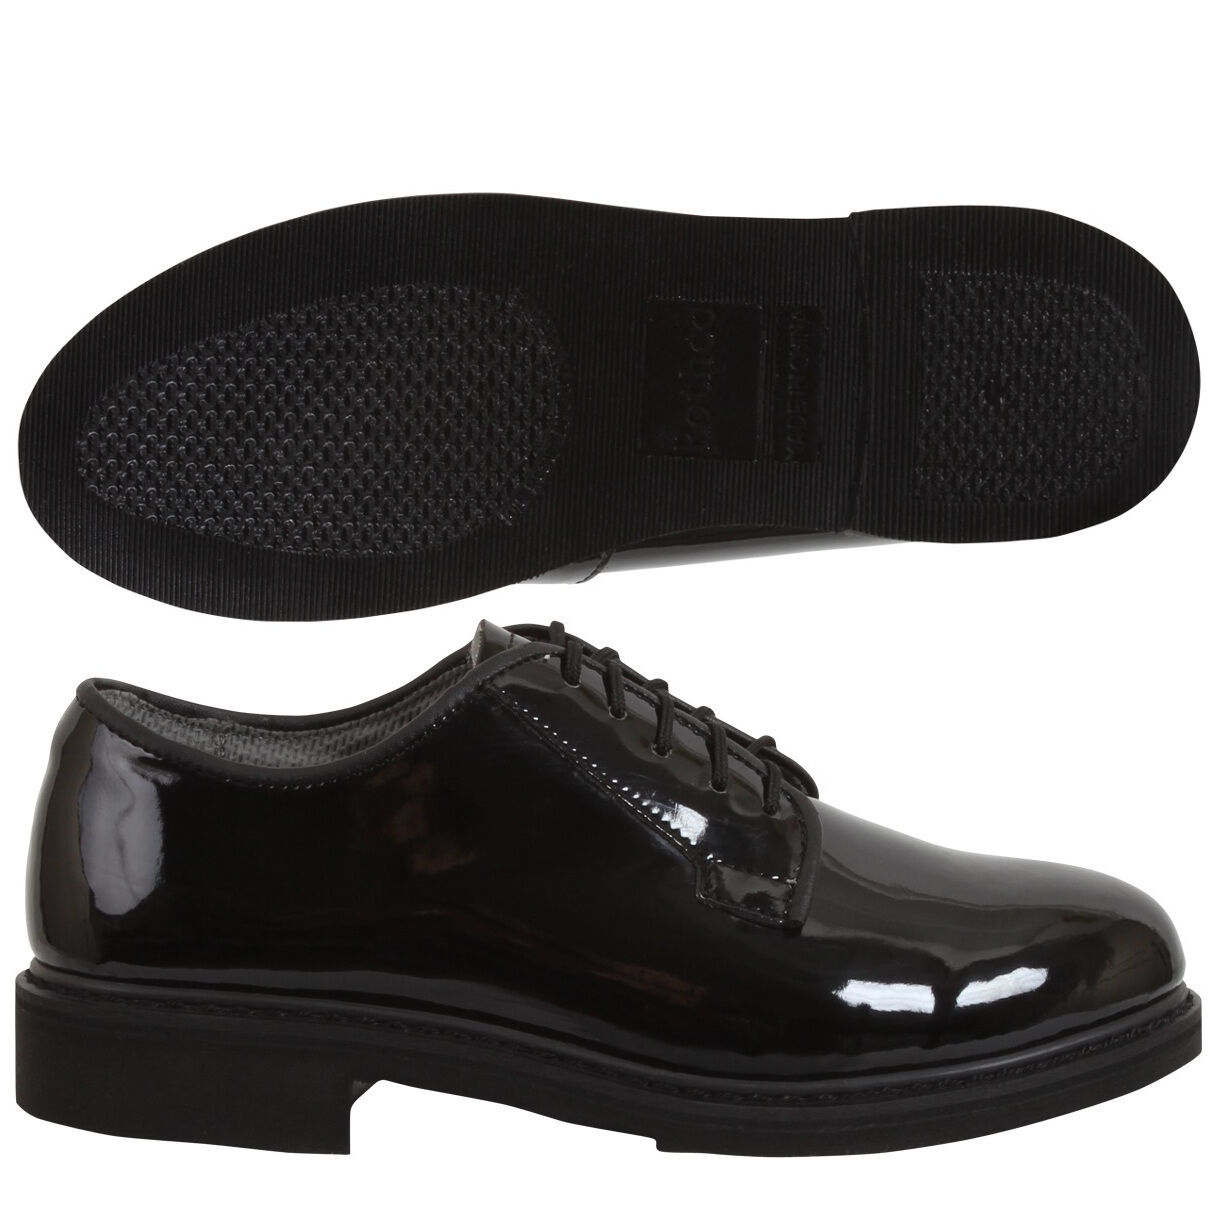 redhco High Gloss Finish Military Uniform Oxford Leather Formal shoes